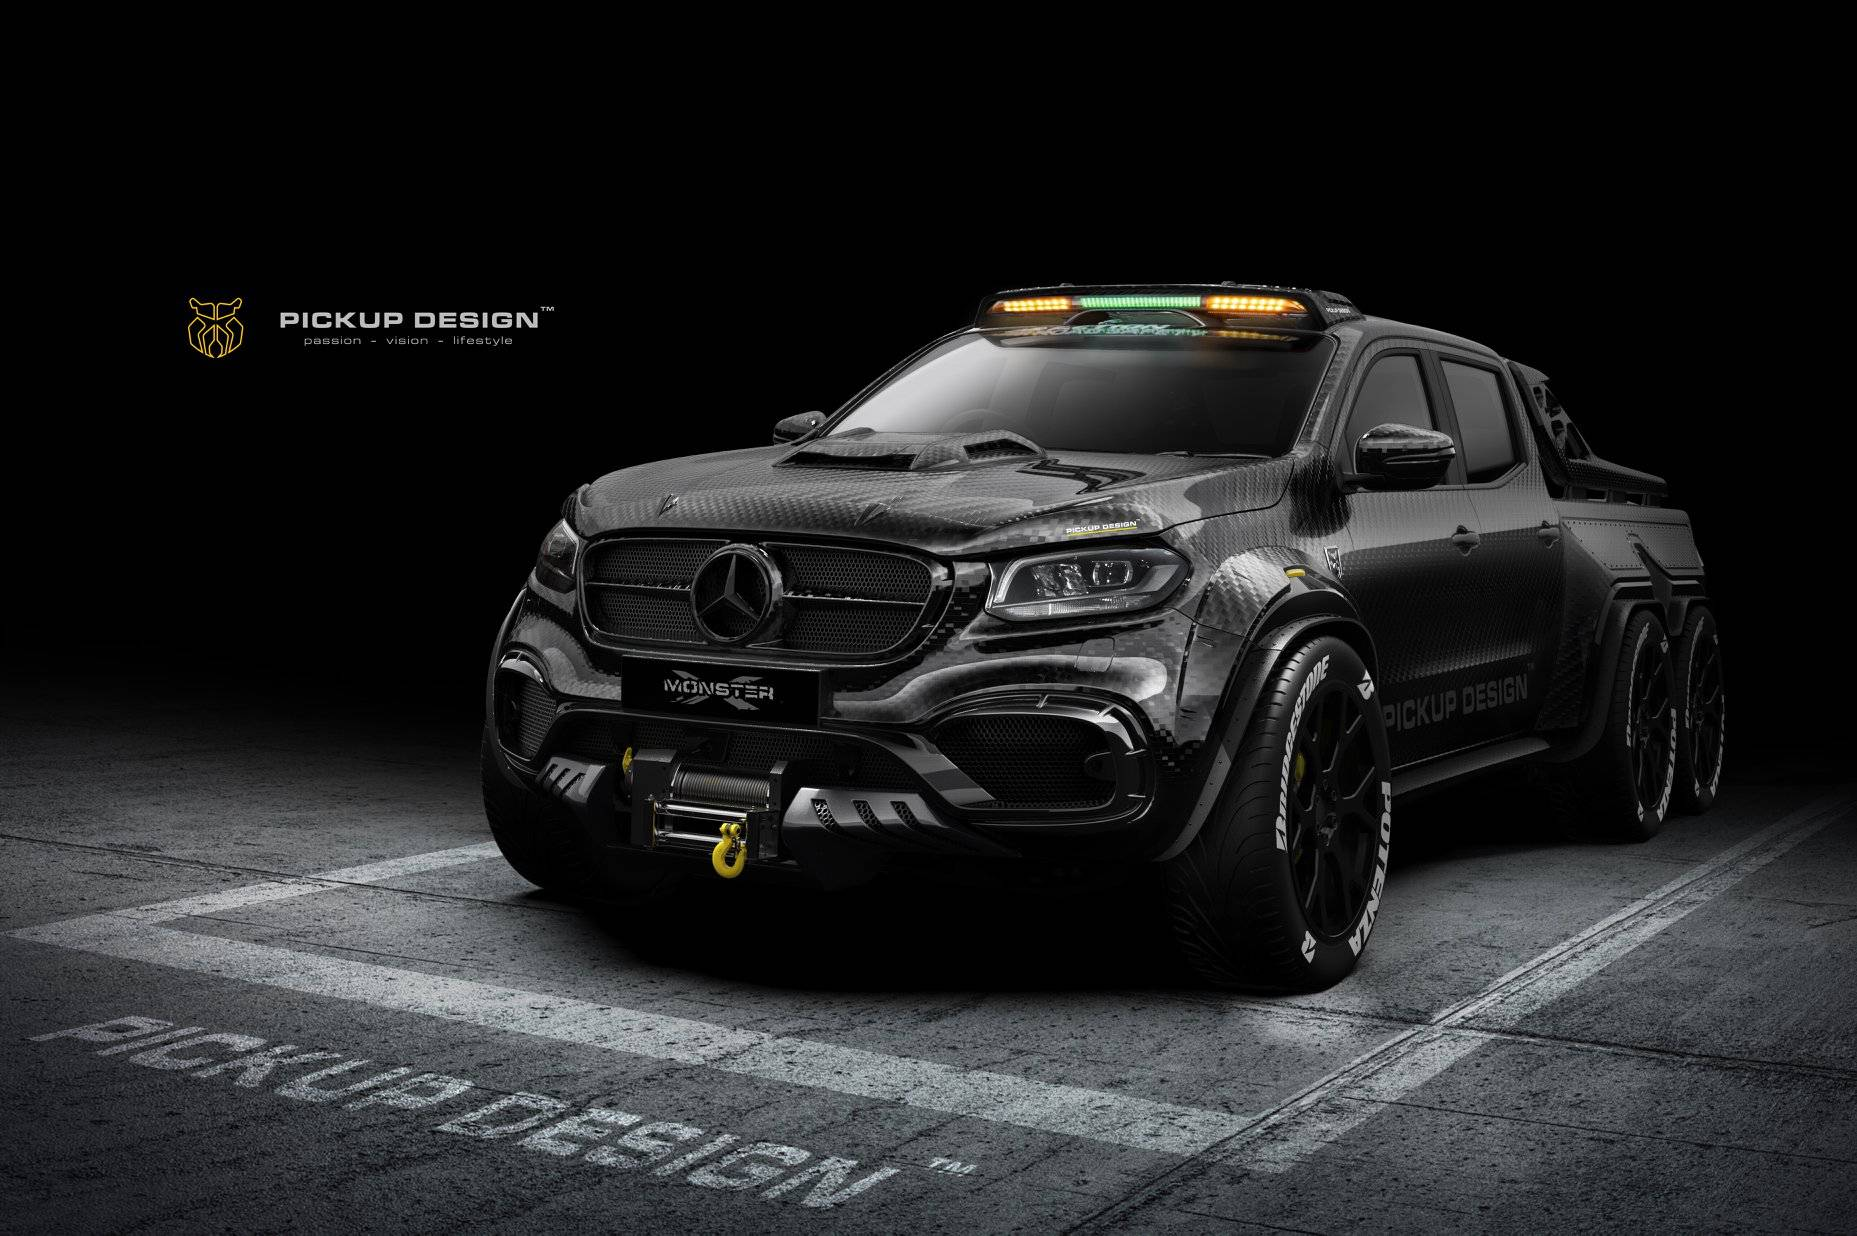 6-Wheel Mercedes X-Class Is a Carbon Monster - autoevolution